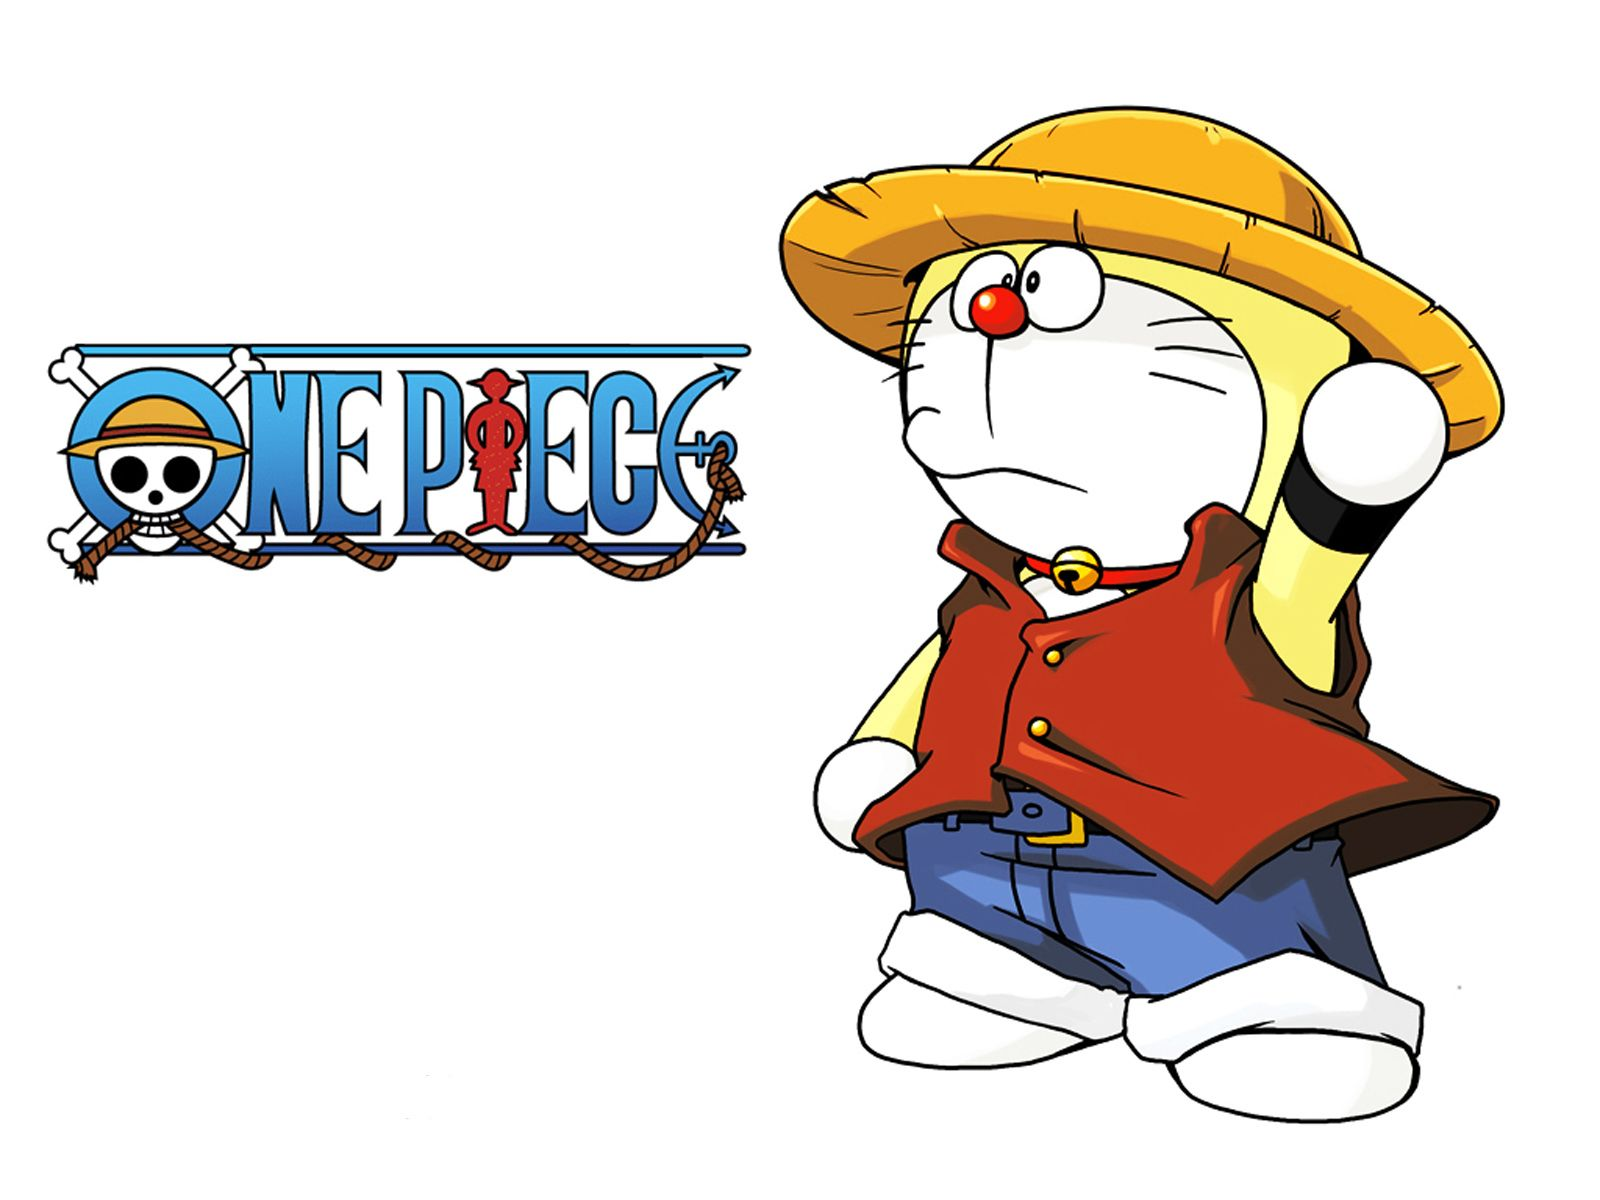 doraemon one piece 1600x1200 wallpapers 1600x1200 wallpapers pictures free download ドラえもん 聖闘士星矢 ドラえもん 壁紙